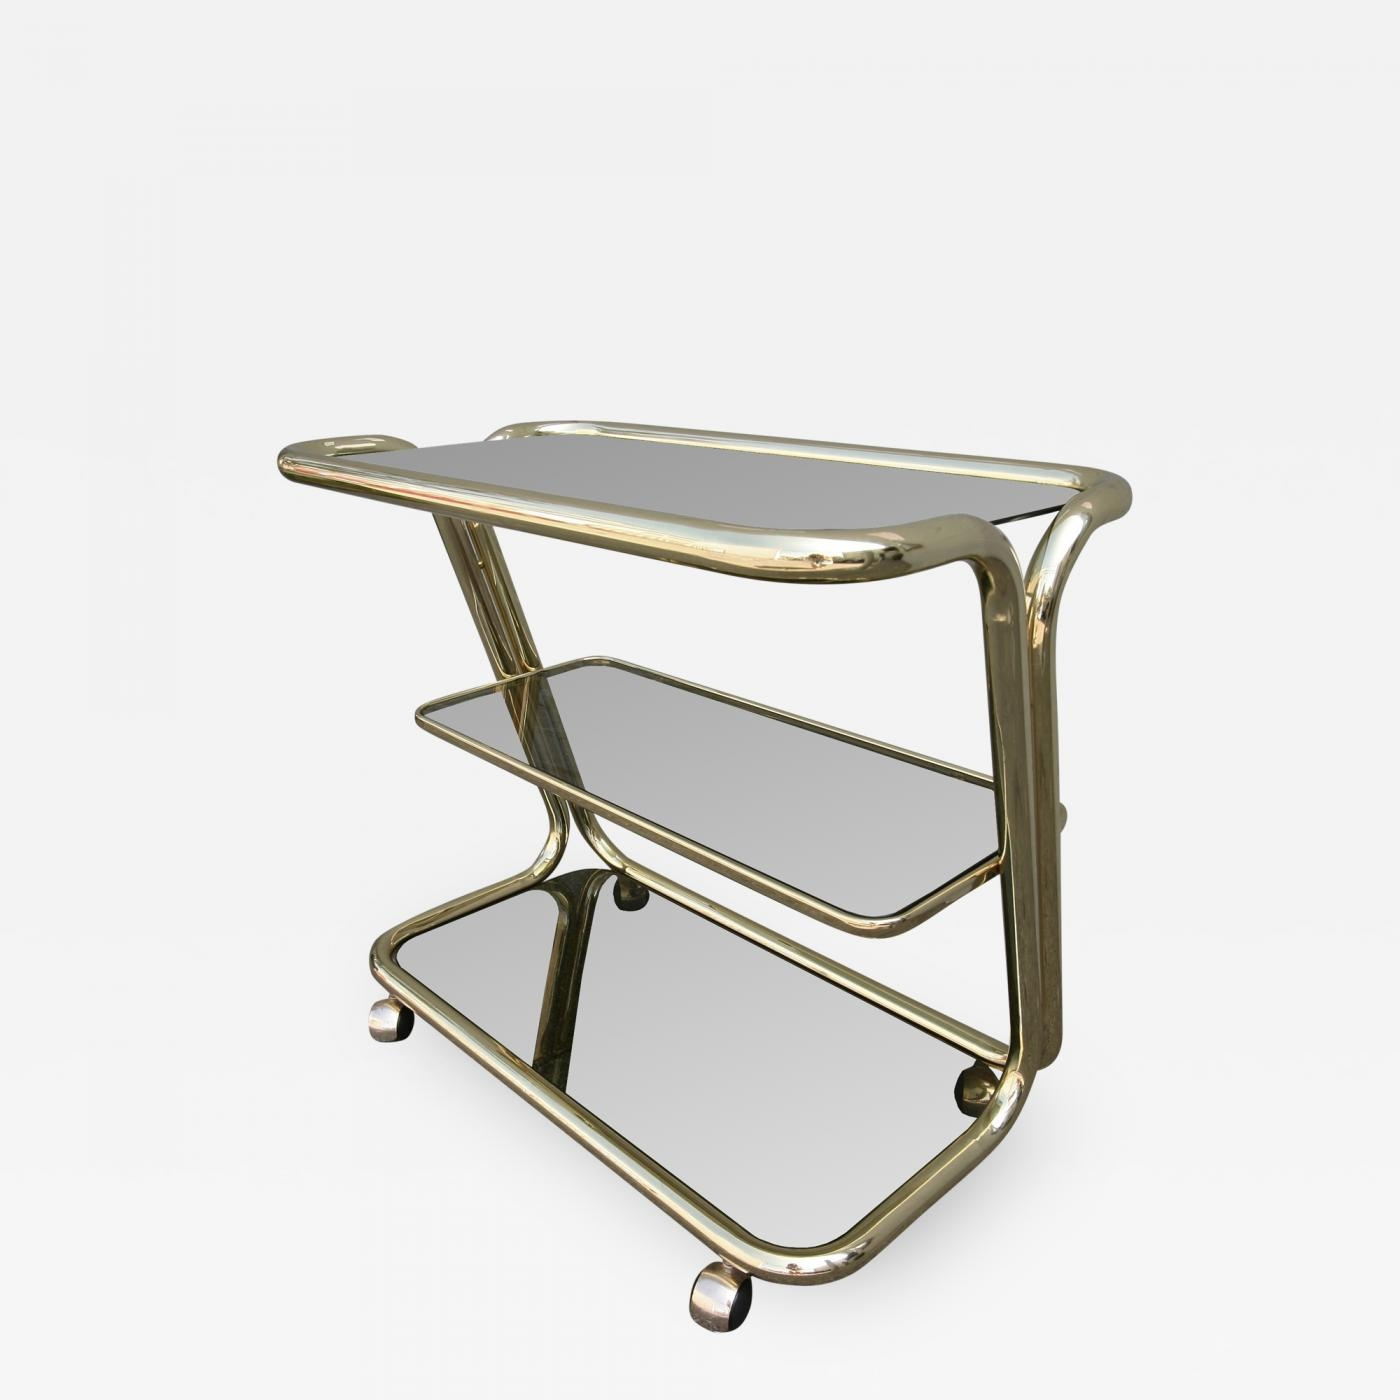 Three Tiered 1970s Brass Bar Cart With Smoked Glass Shelves Intended For Smoked Glass Shelves (View 6 of 15)